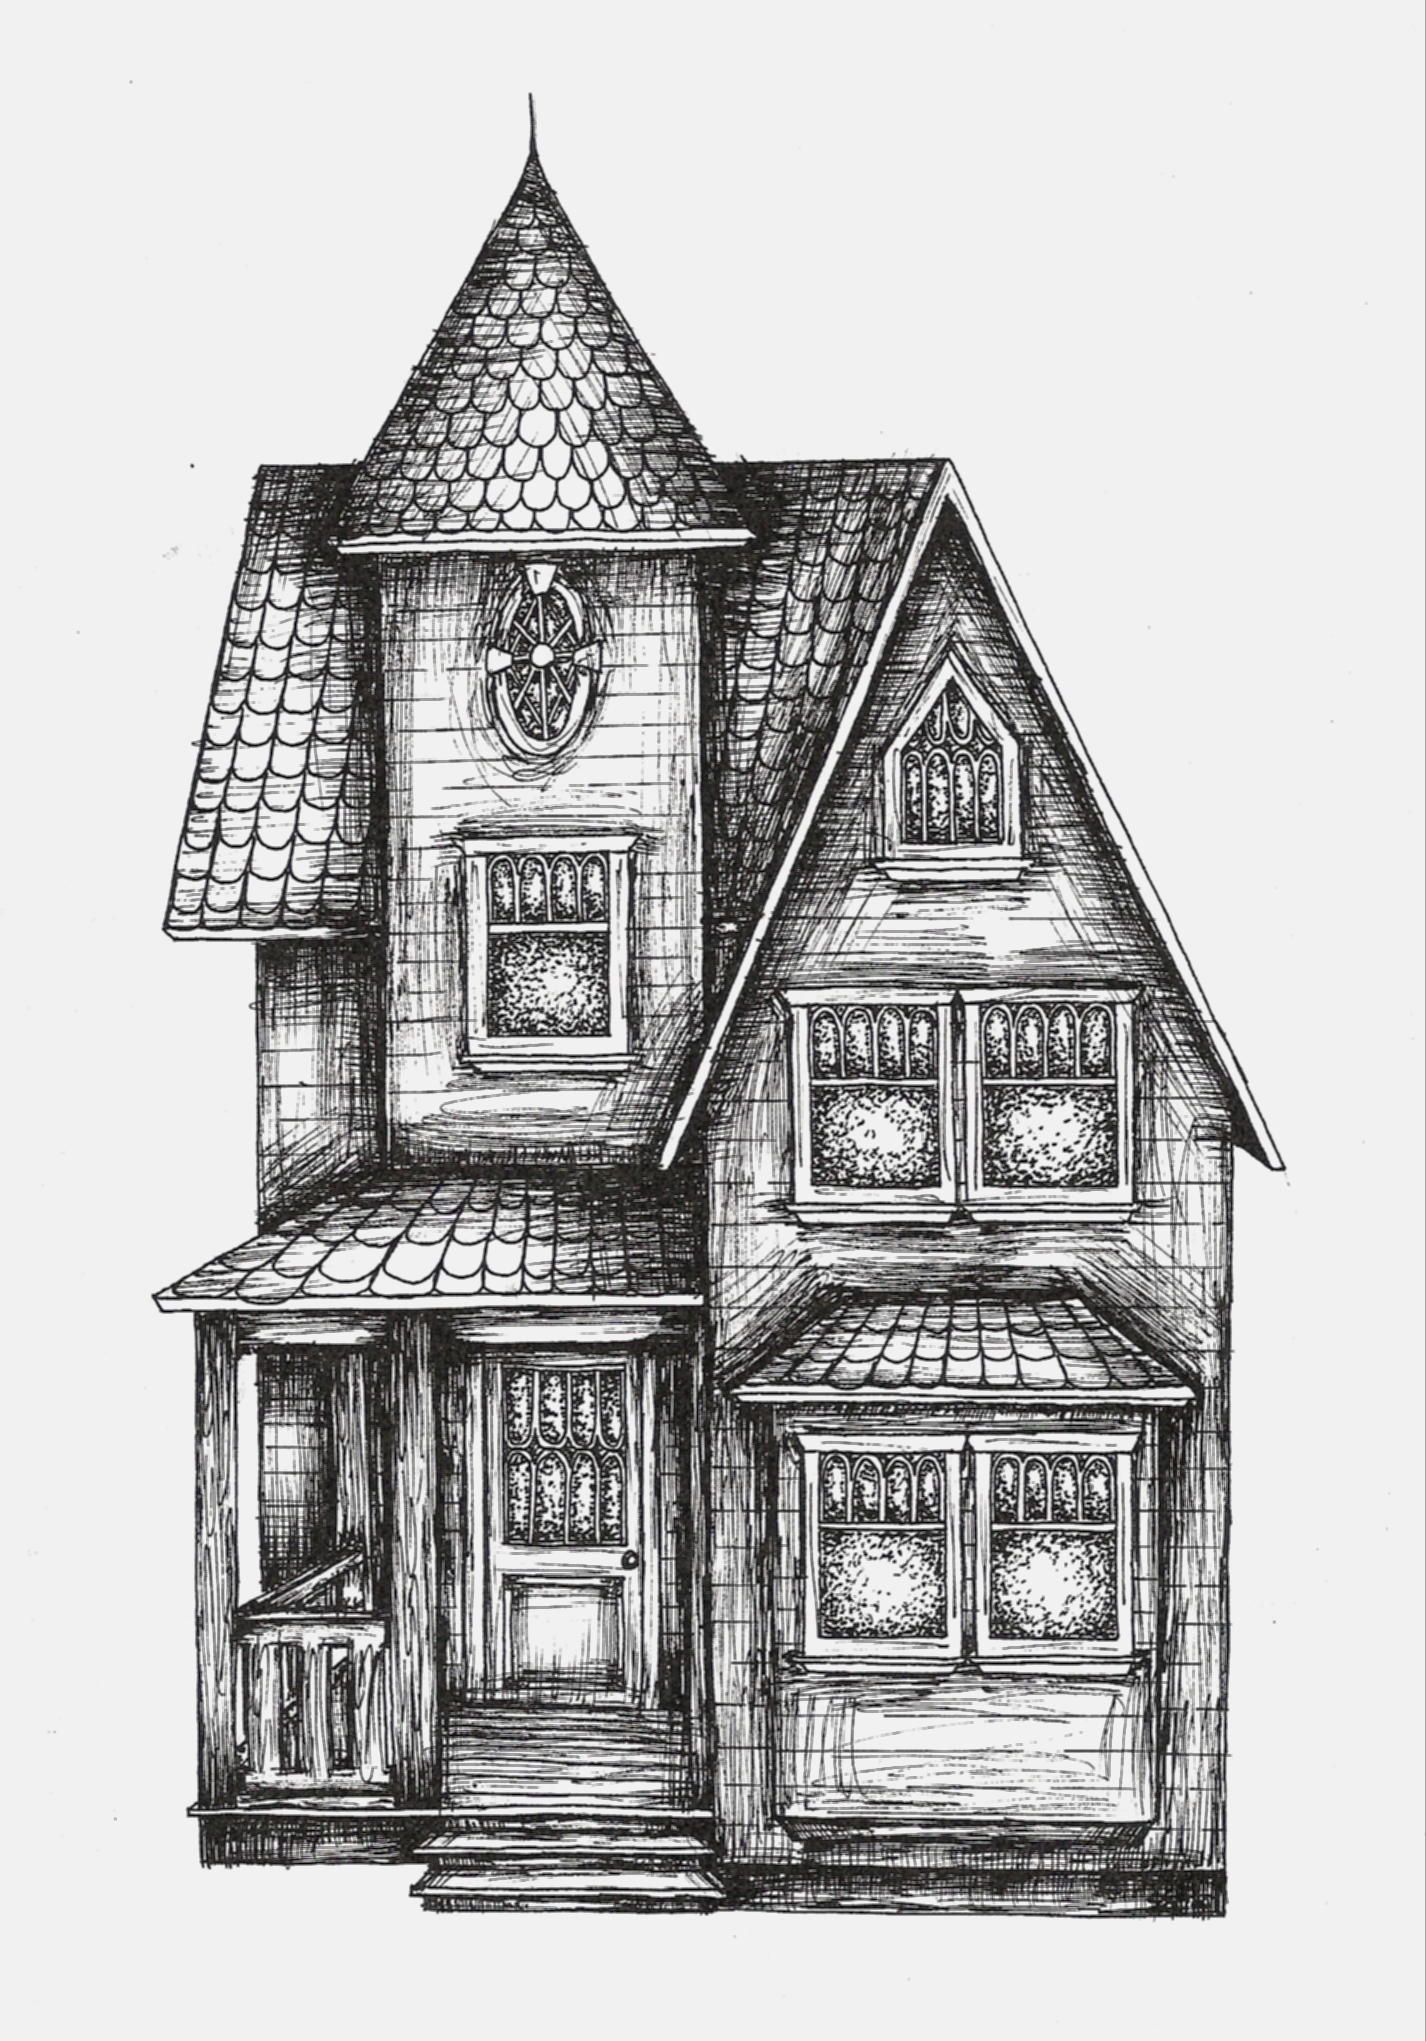 House Sketch Gallery Graphic Sketch House Portraits By Artist